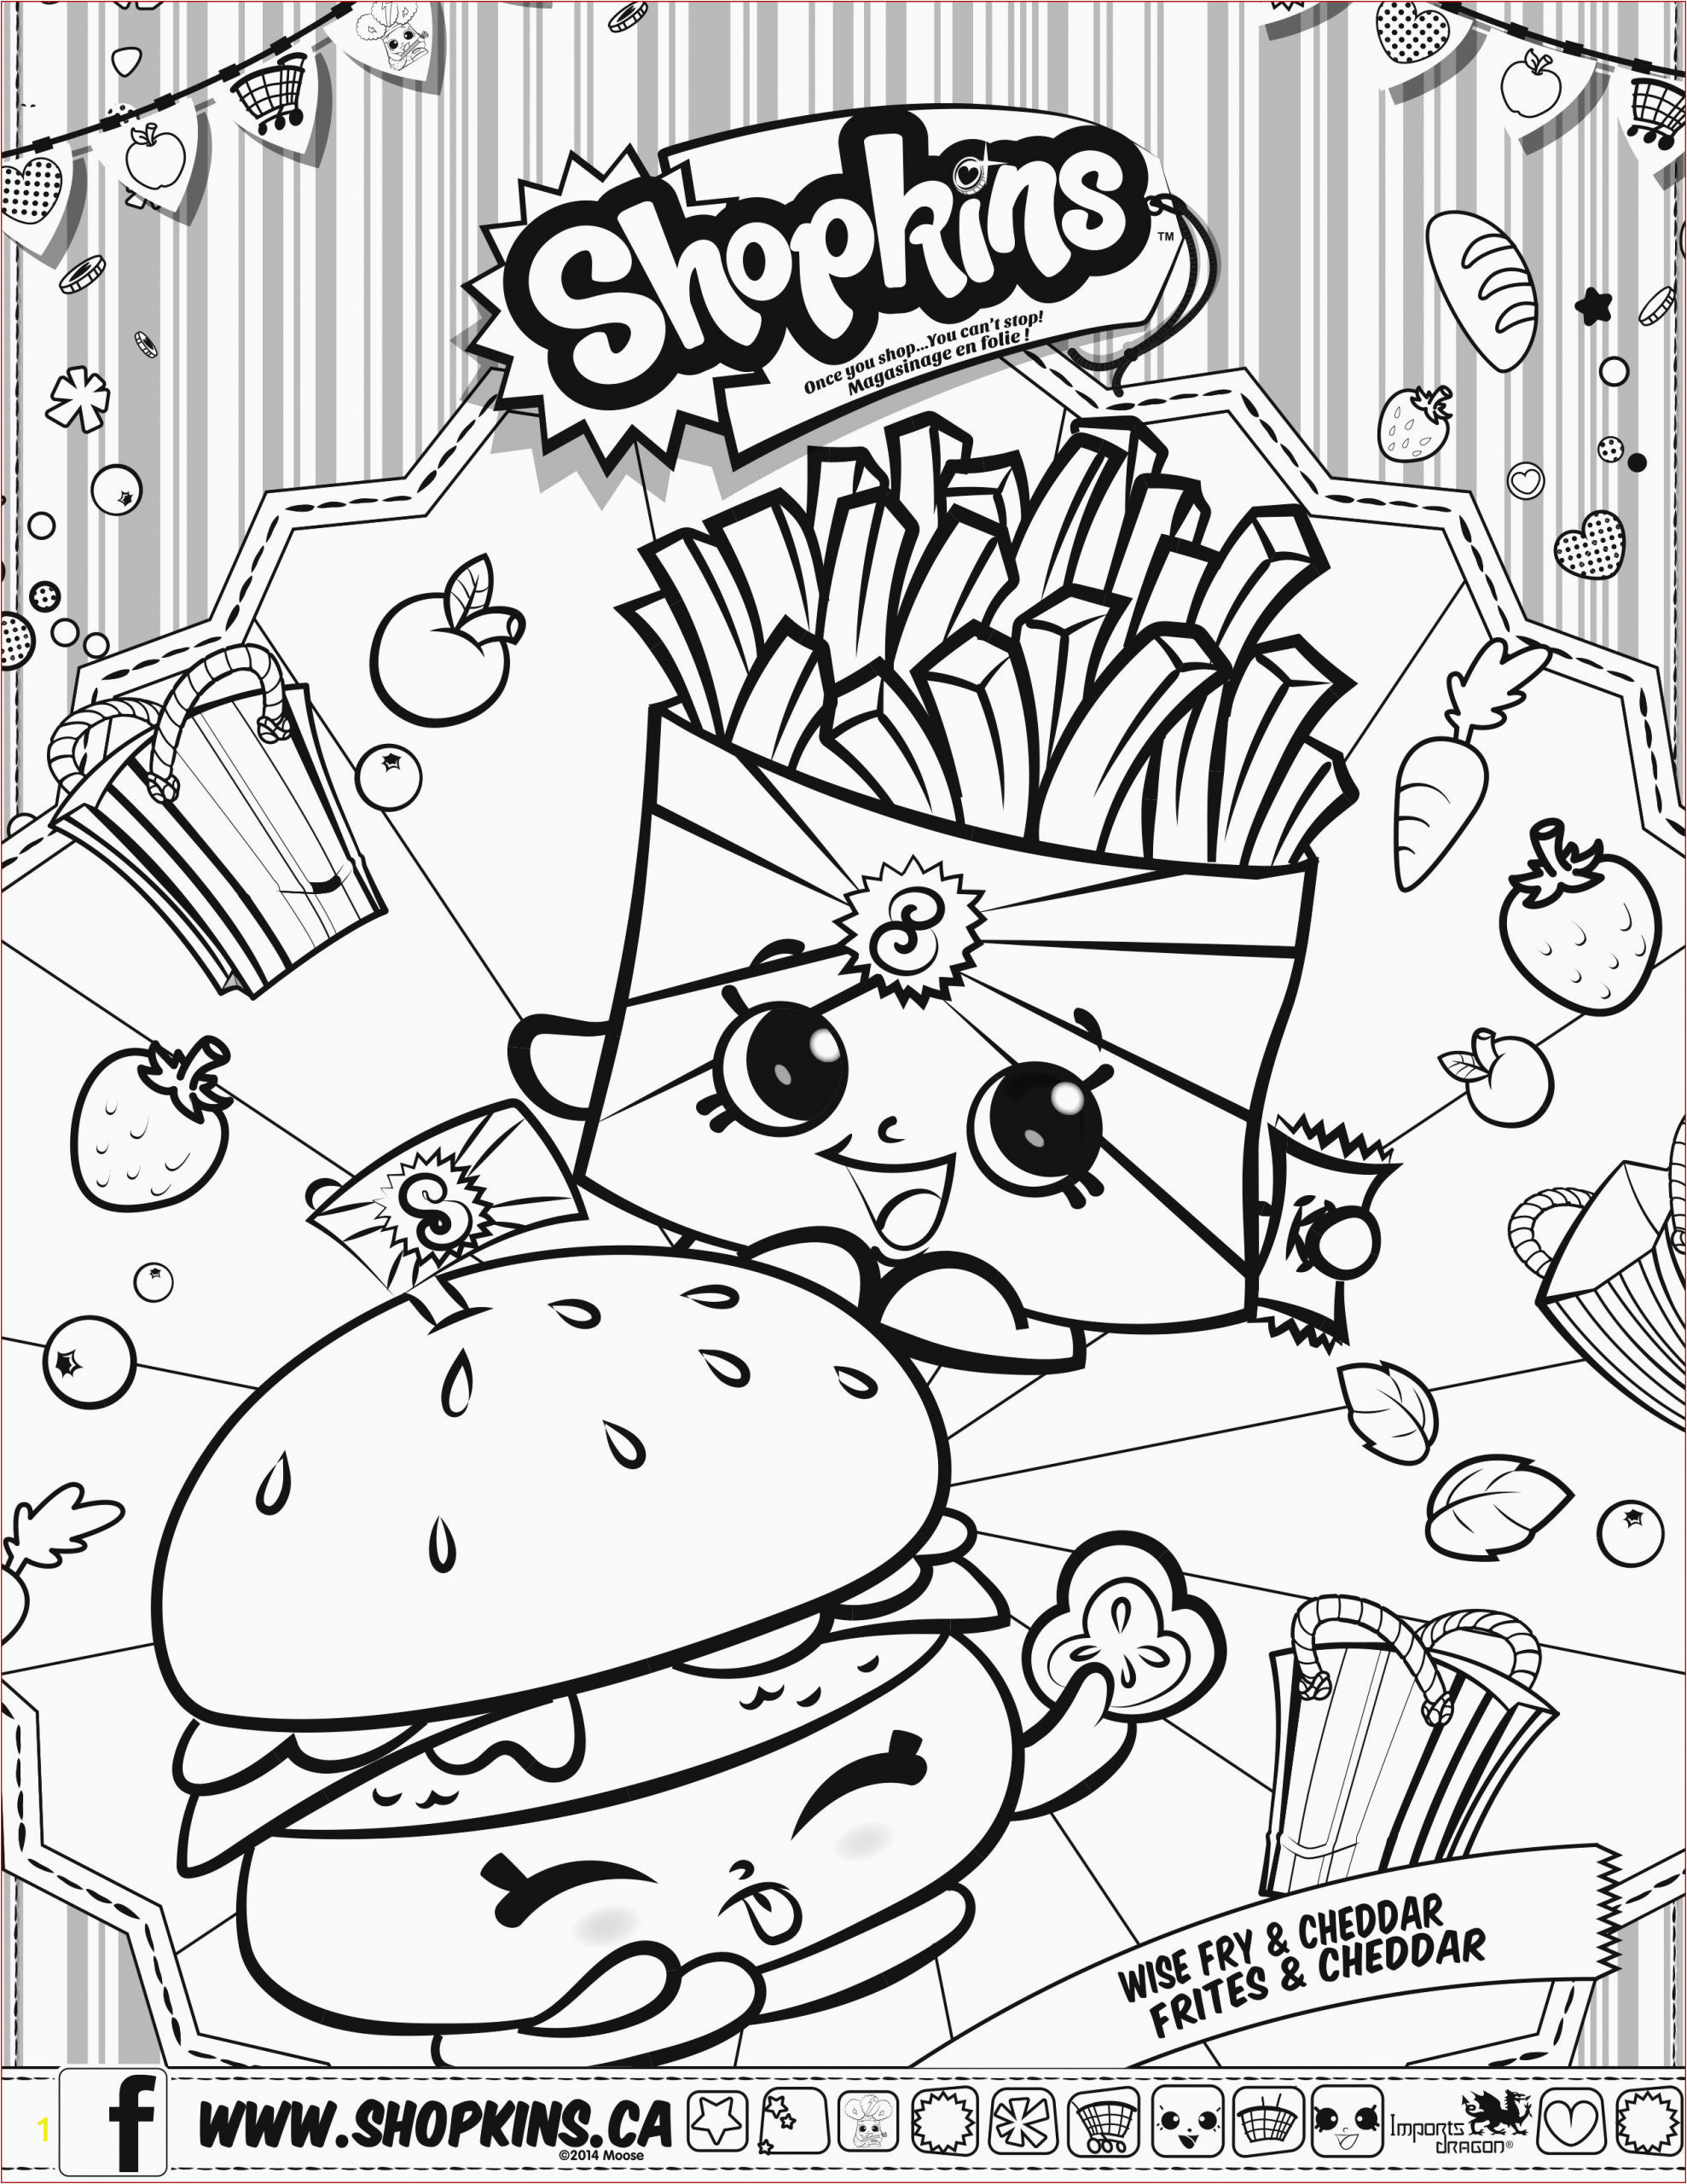 preschool summer coloring pages chuggington starry night page kawaii doodle sheets for year olds totem pole printables printable ghost peacock adults shopkins timmy